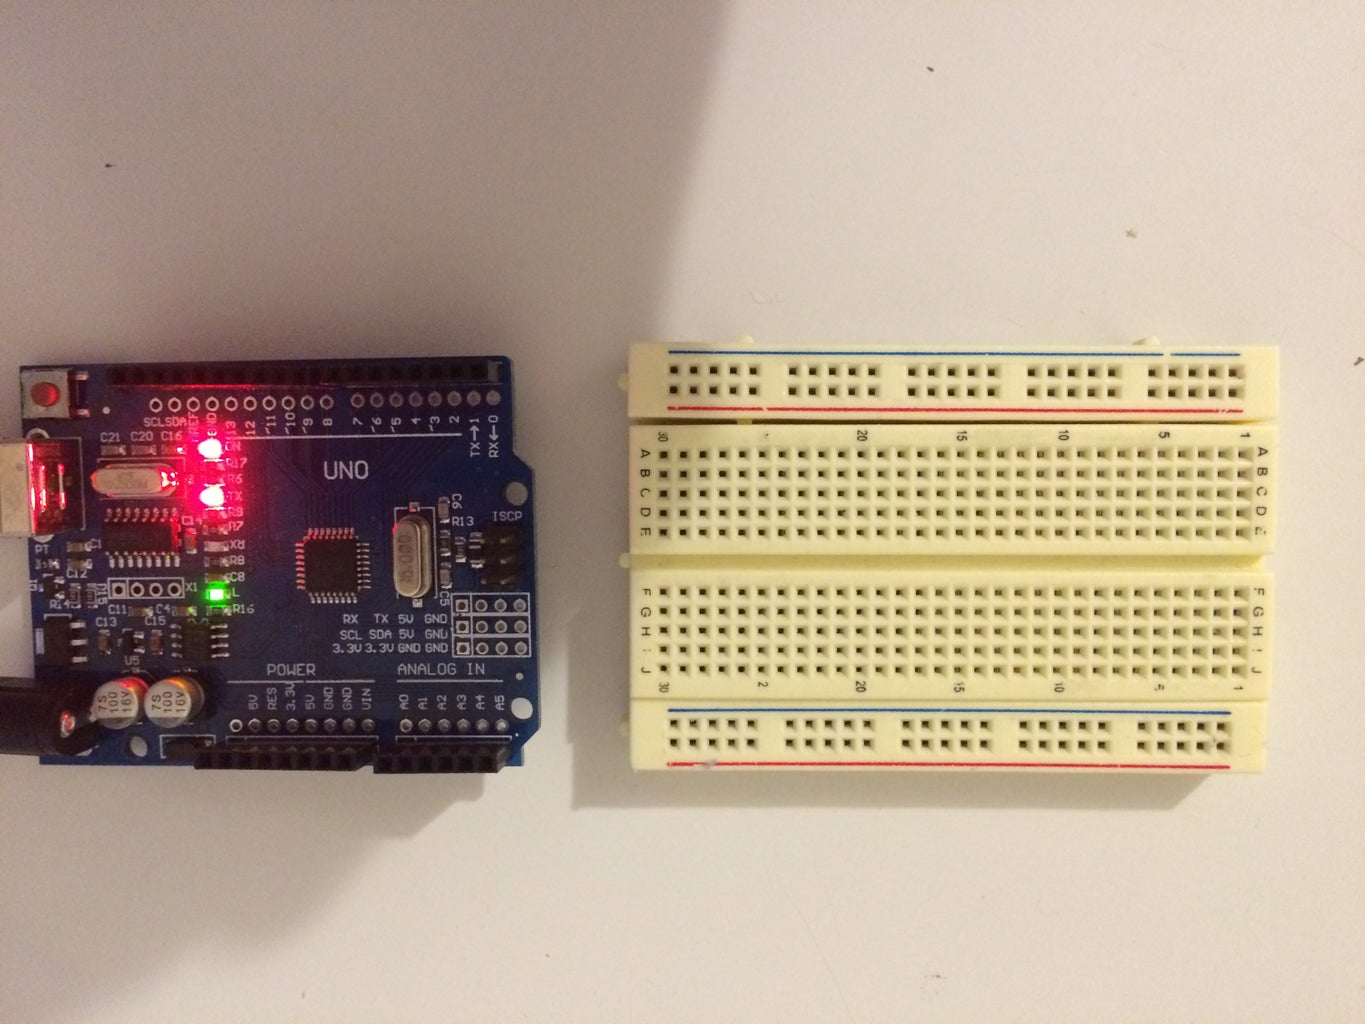 Setting Up the Breadboards